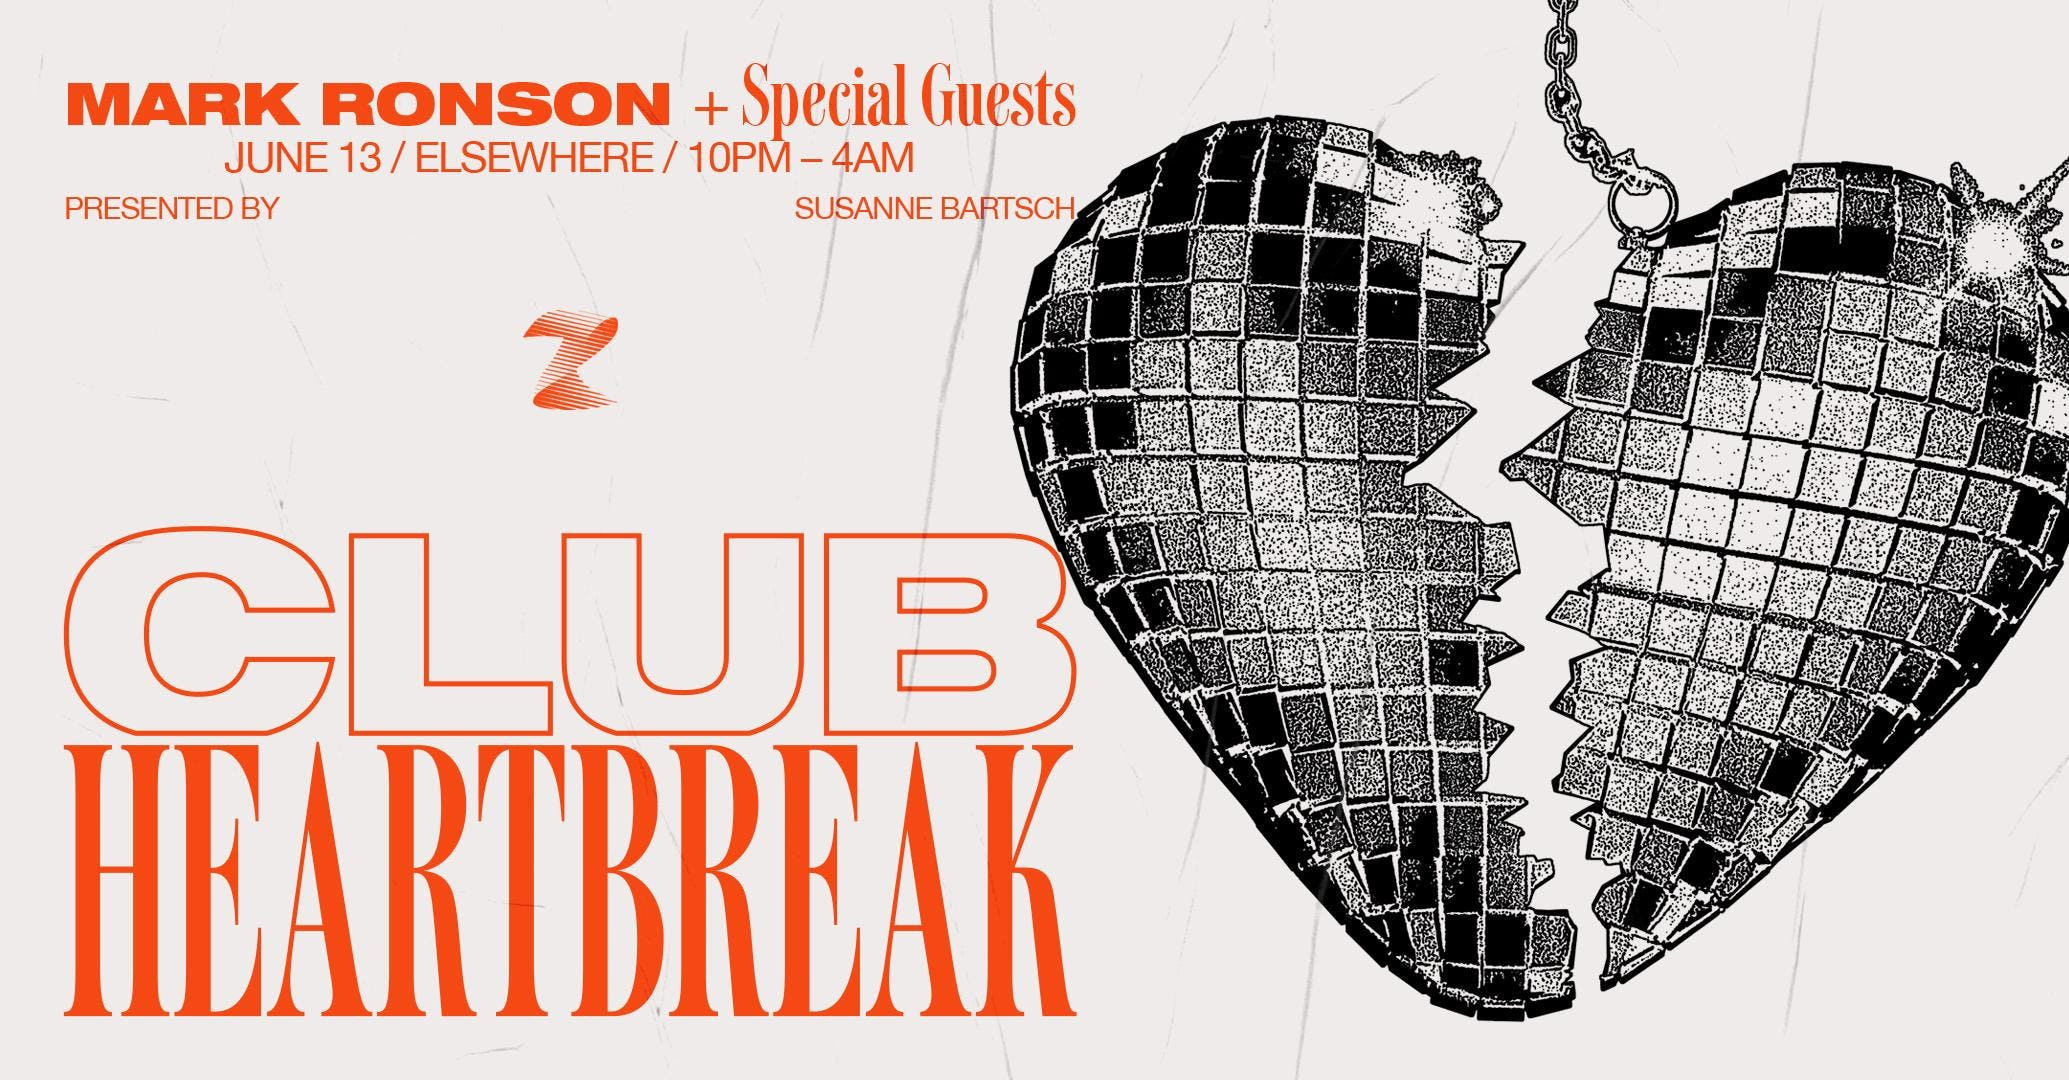 Club Heartbreak w/ Mark Ronson + Special Guests